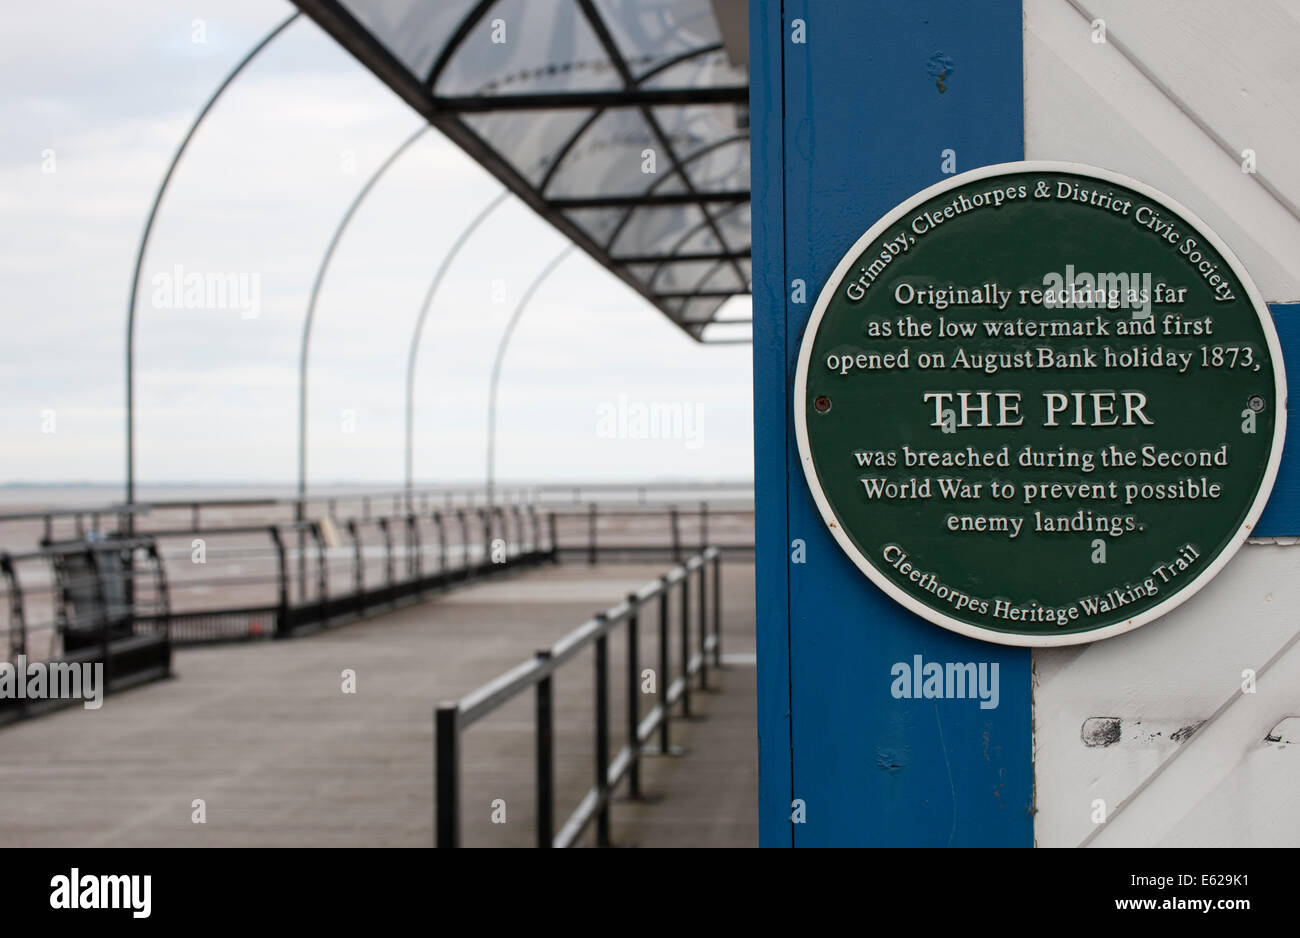 Green plaque at Cleethorpes Pier, Cleethorpes, North East Linolnshire. - Stock Image